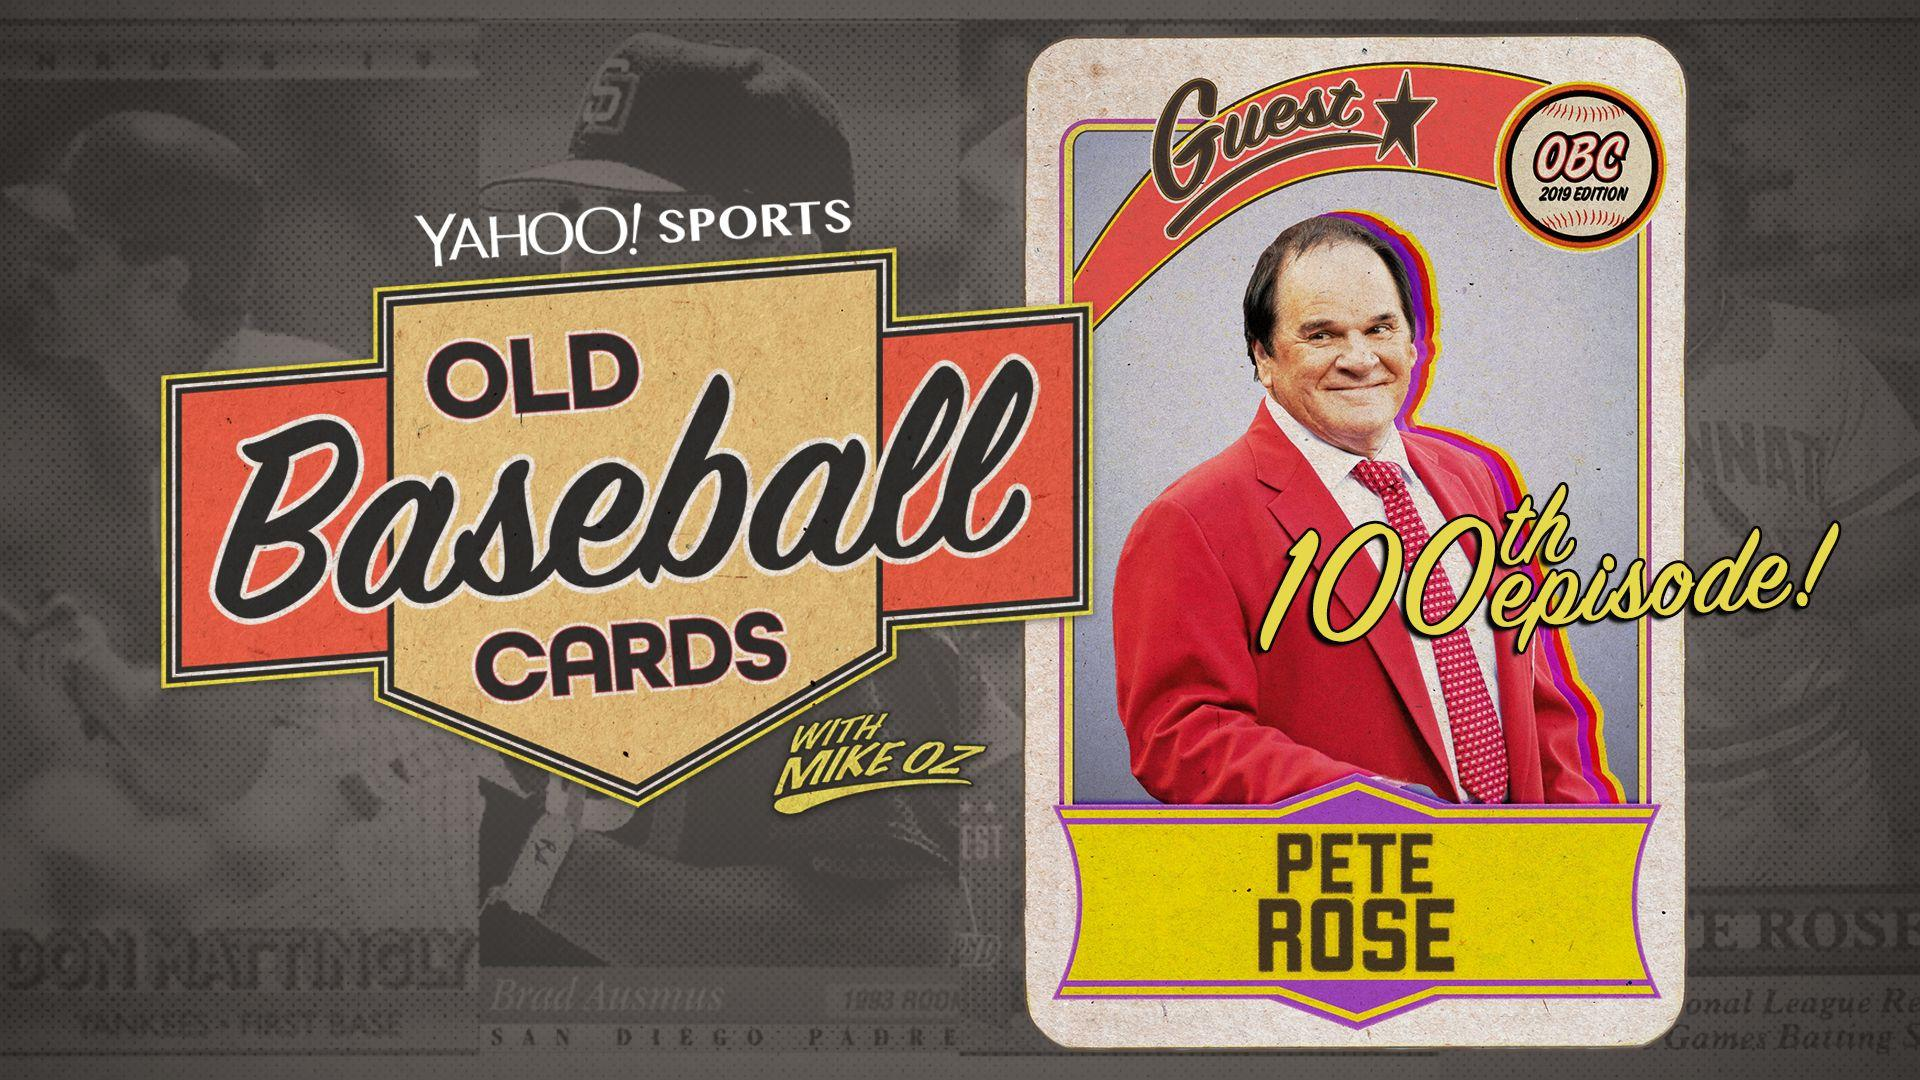 Old Baseball Cards Pete Rose Opens 1983 Topps 1981 Fleer And Tells